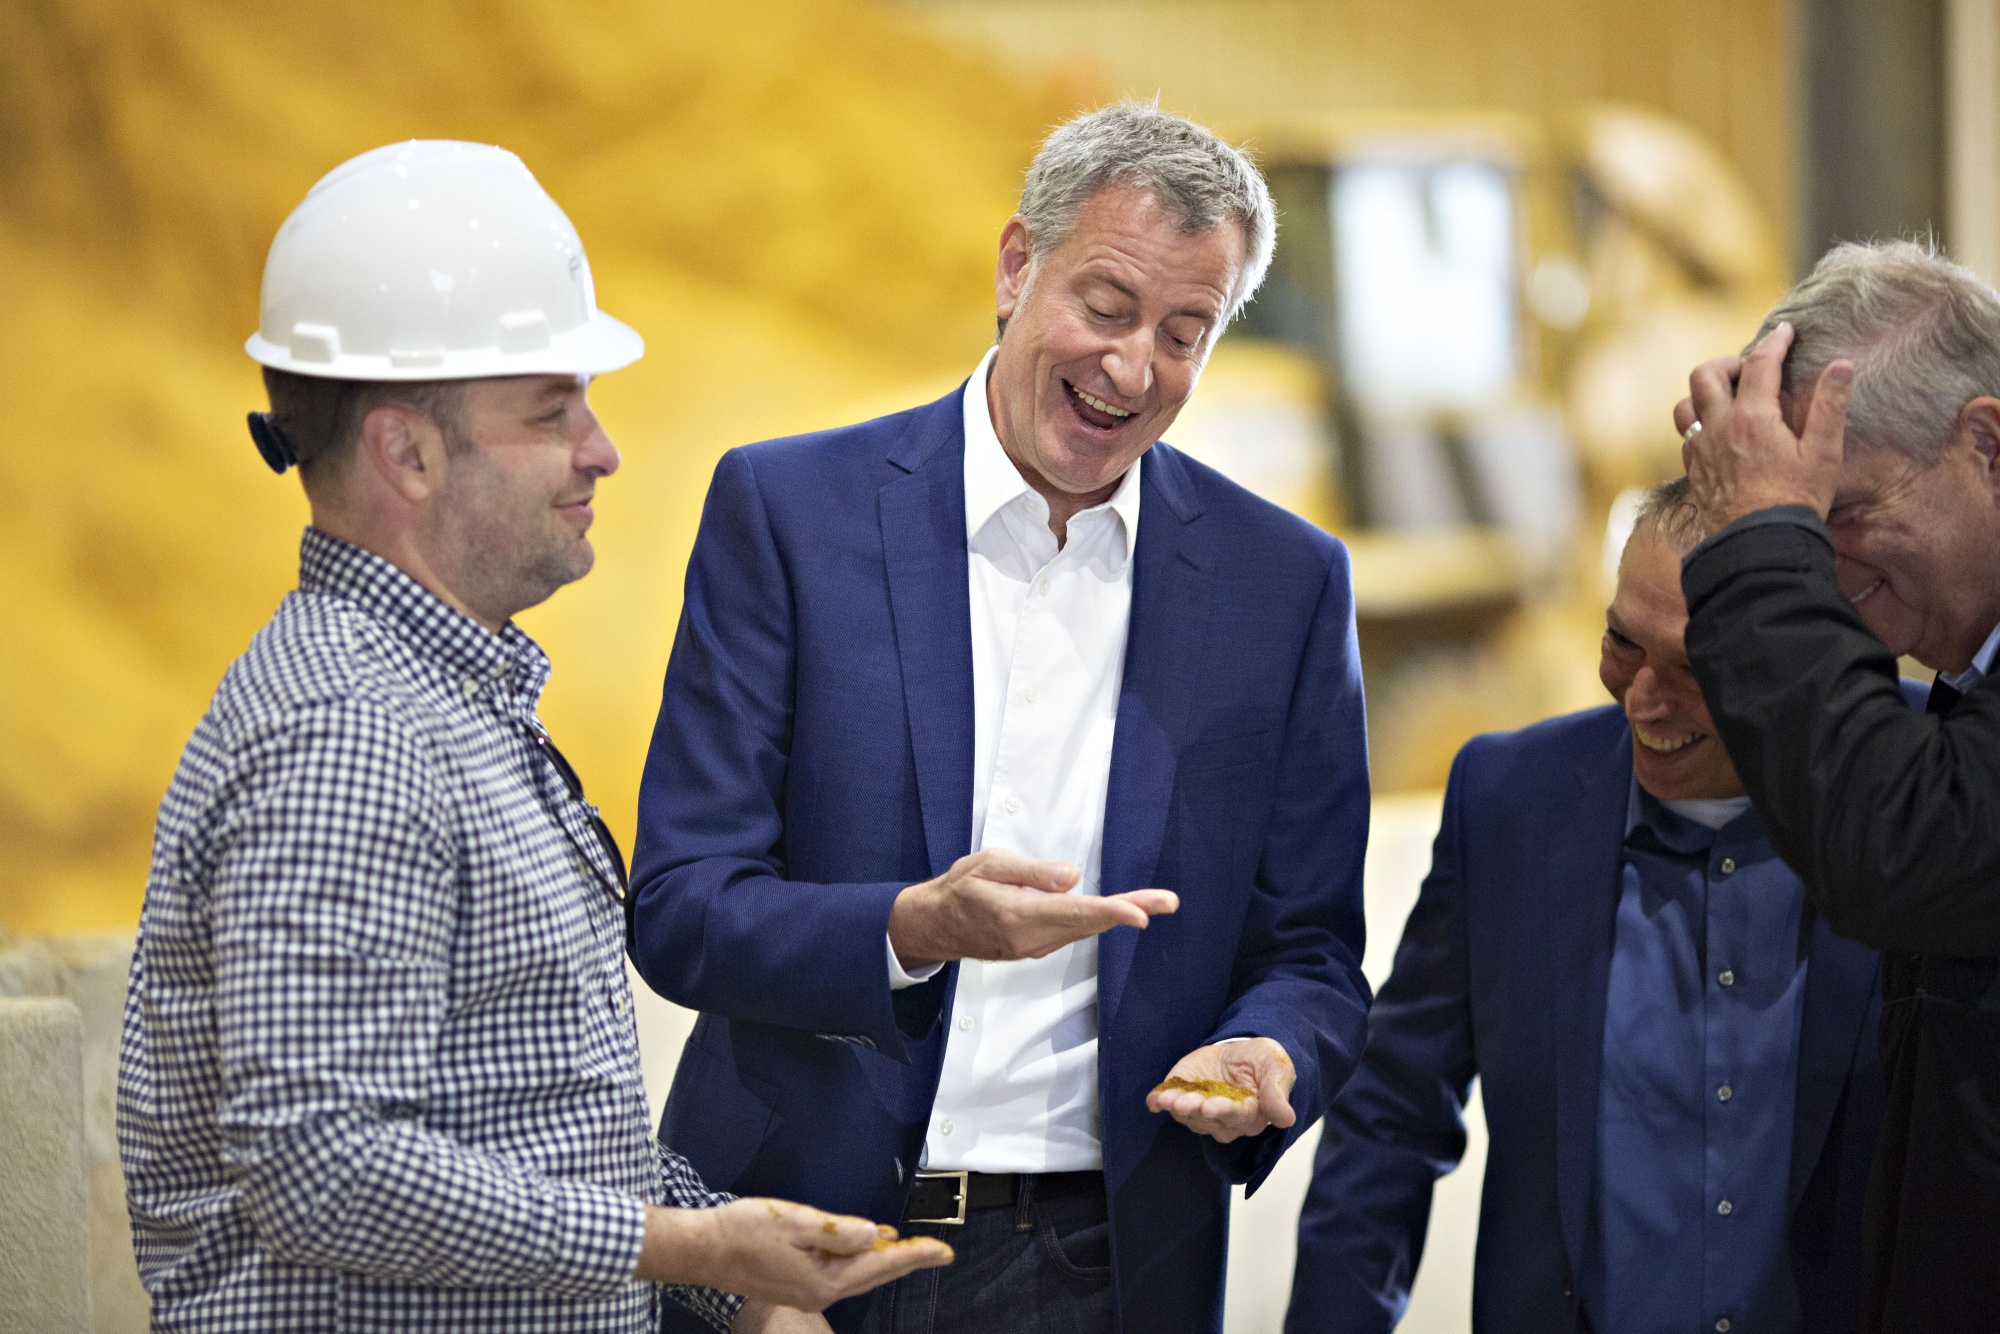 Bill de Blasio, center, smiles while holding a handful of dried distillers grains in Iowa.